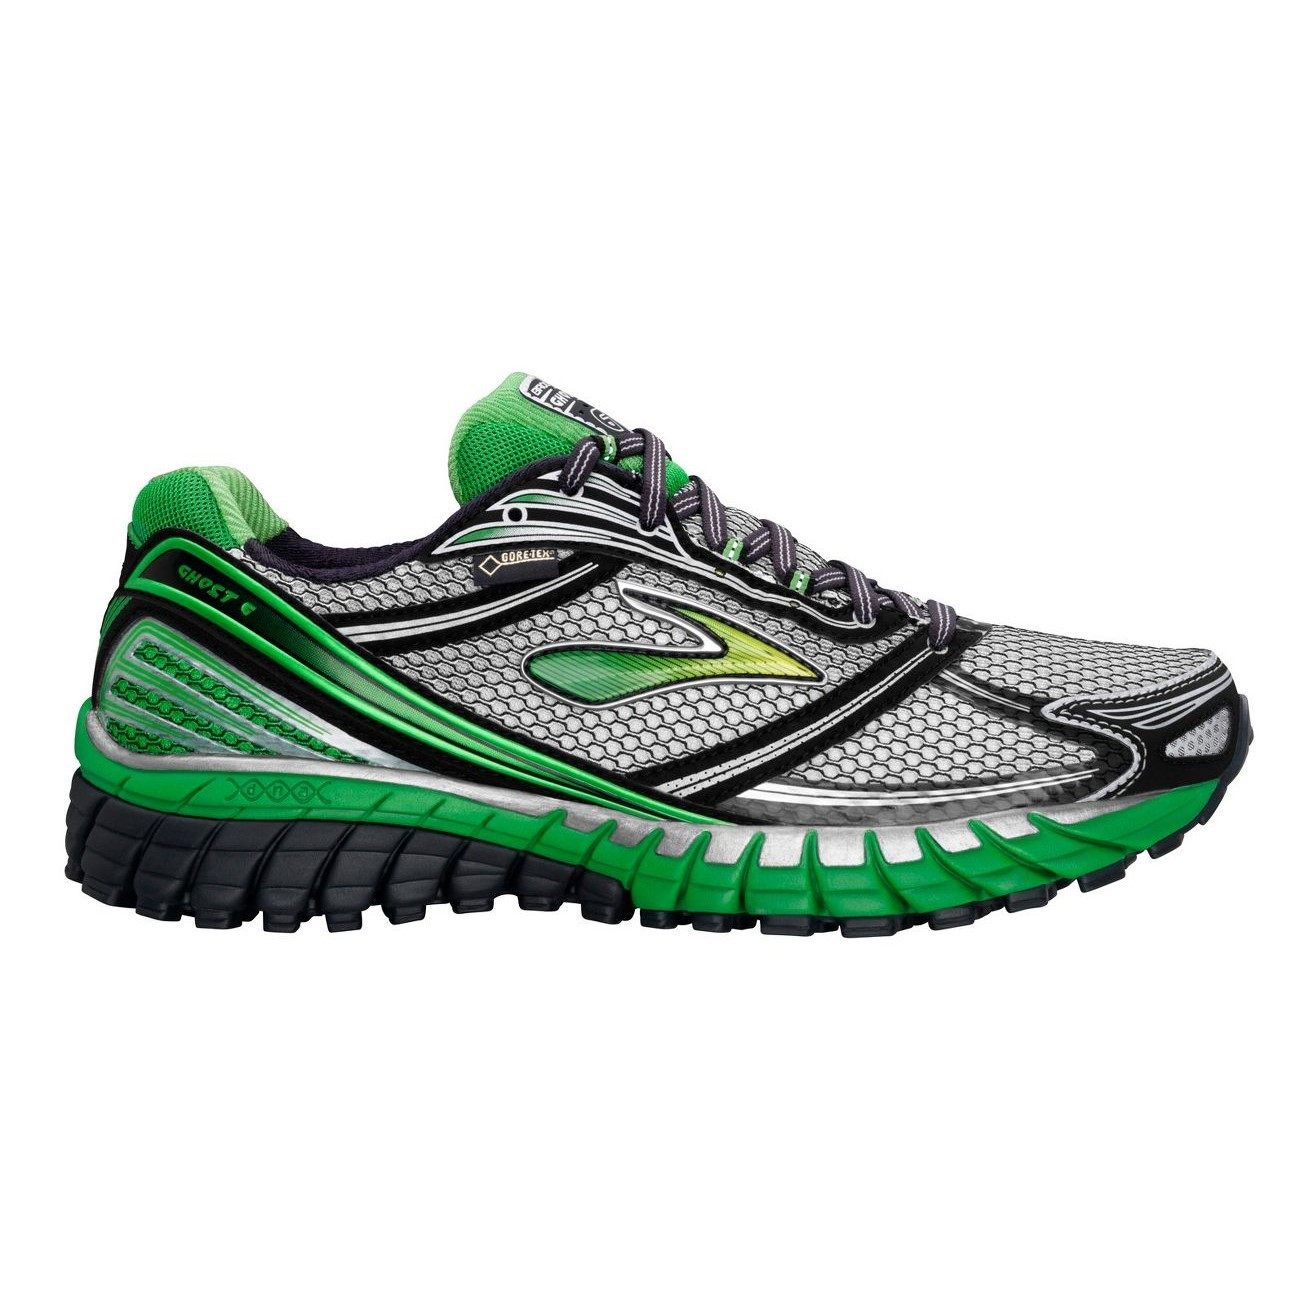 7192a2b87cfd3 Brooks Ghost 6 GTX - Mens Trail Running Shoes - Anthracite Black Silver